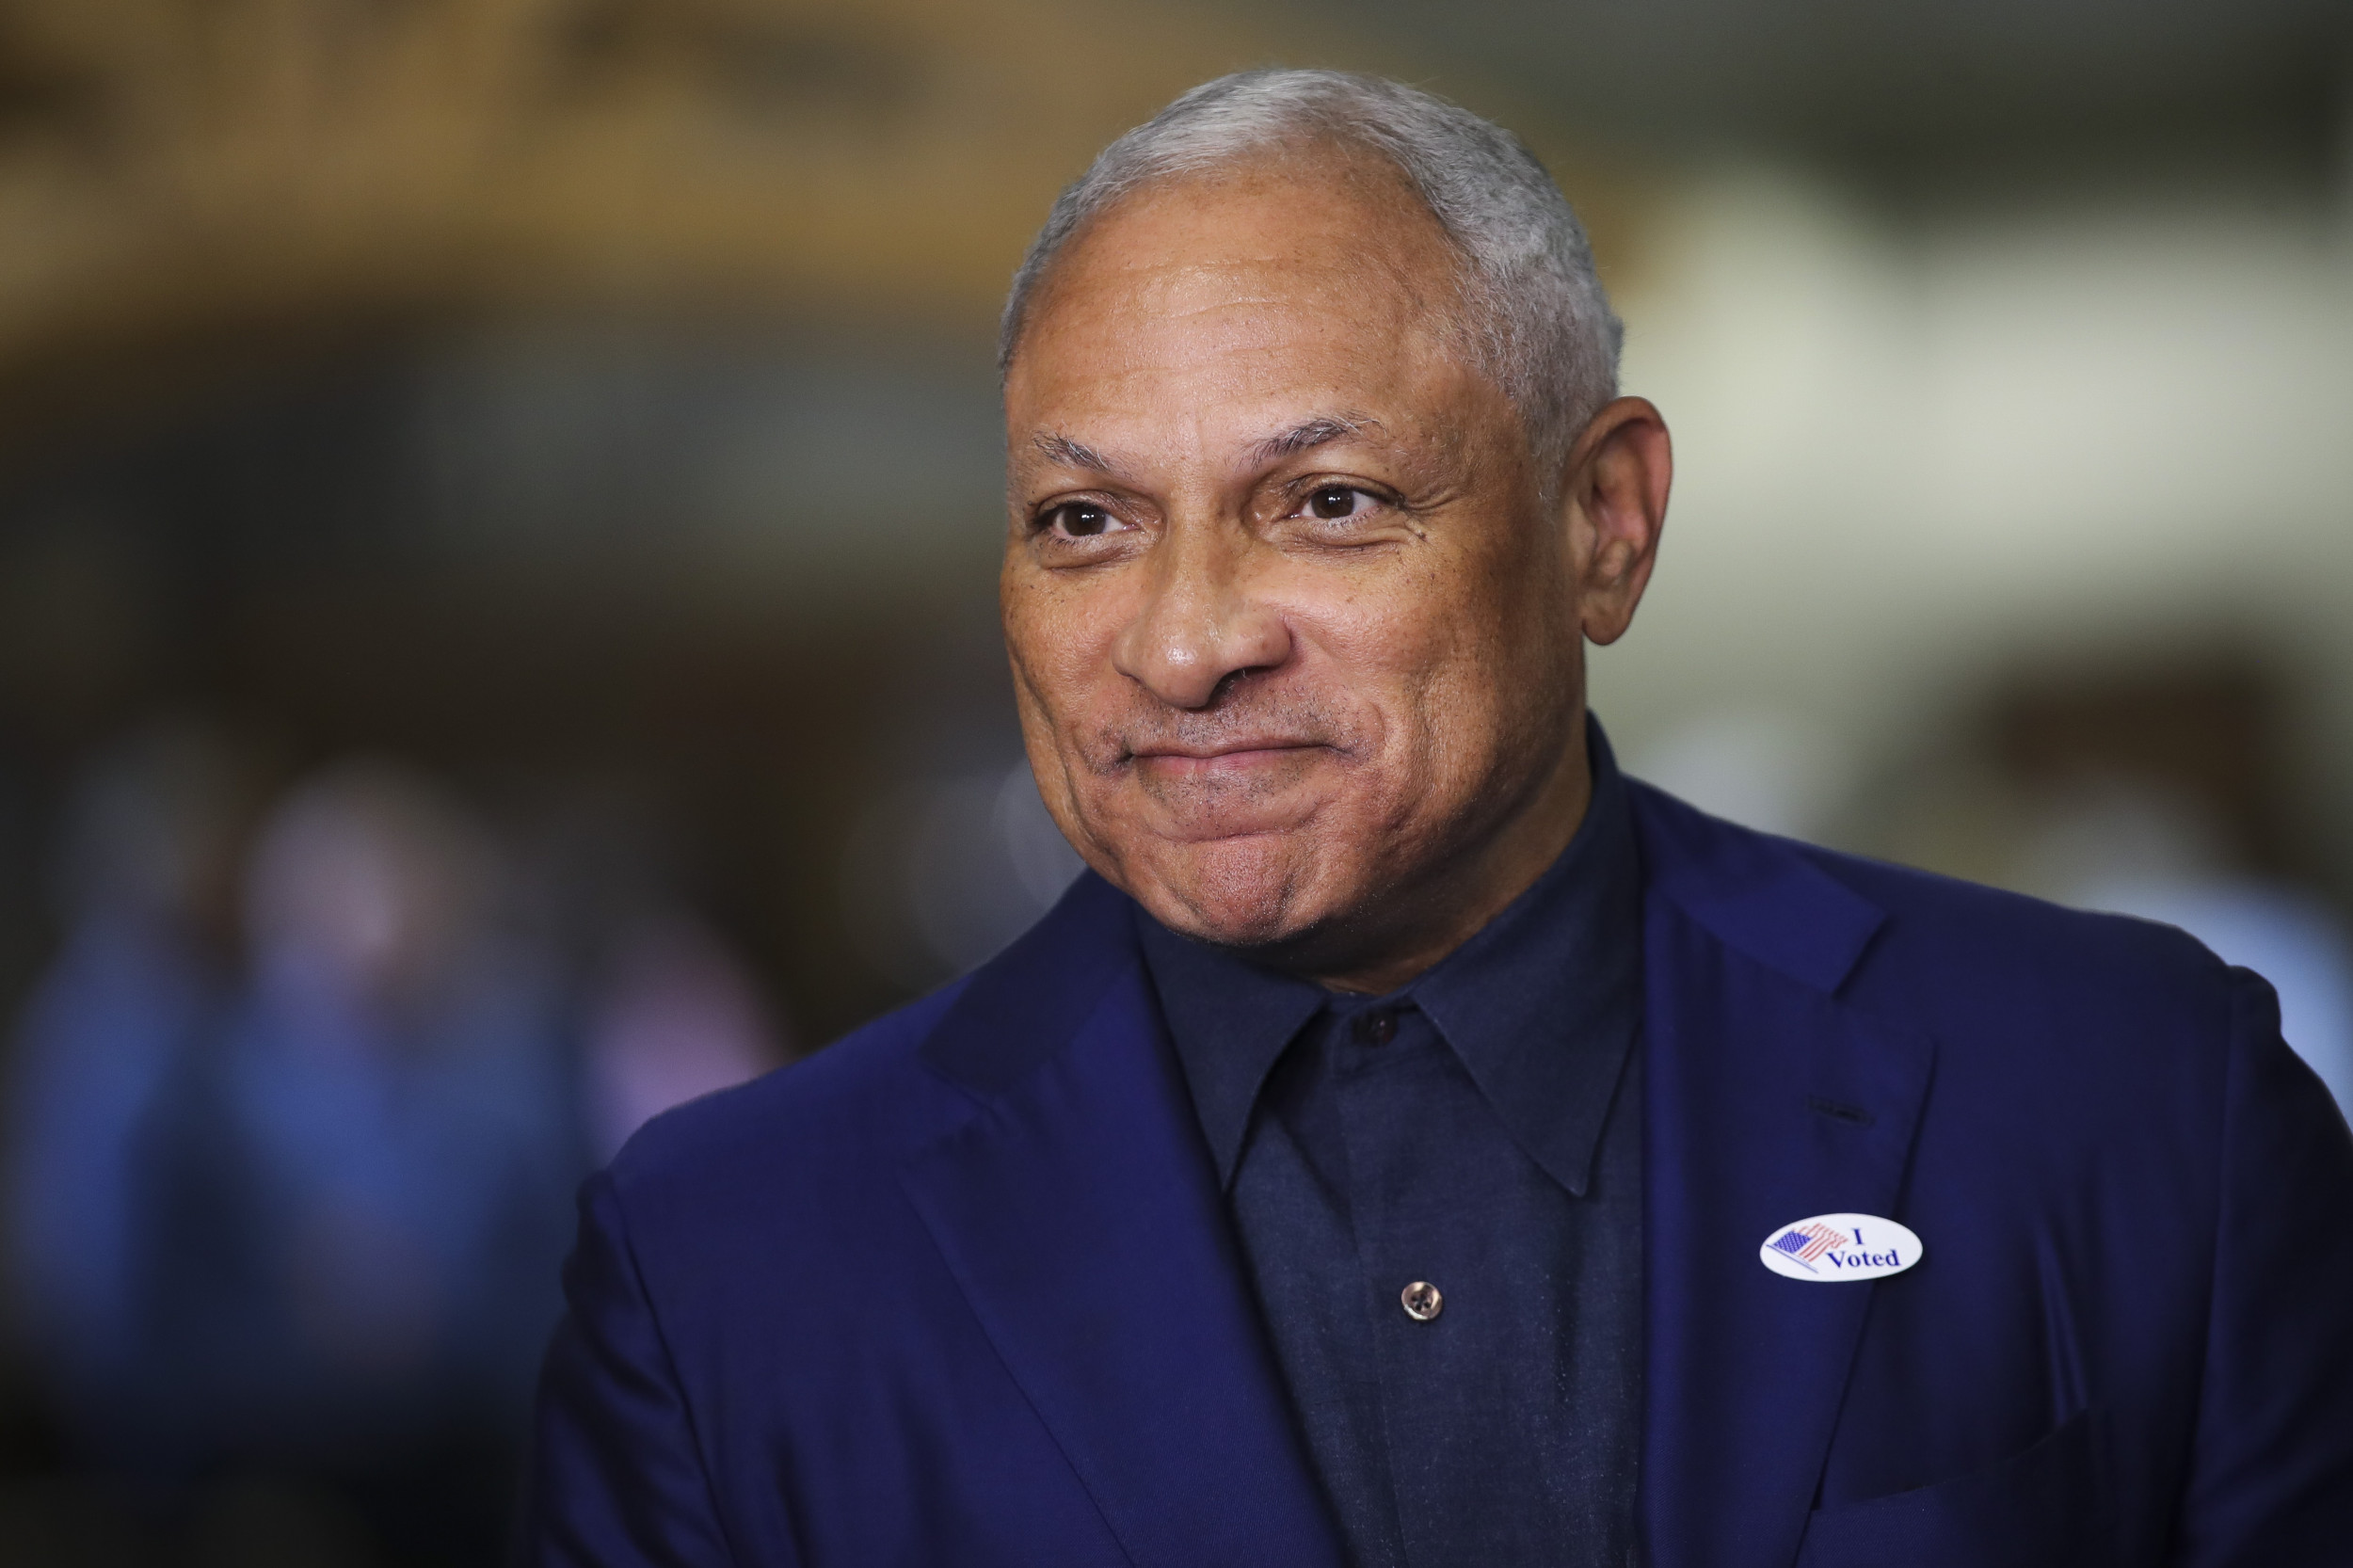 Mike Espy Erases 25-Point Deficit In Bid to Become Mississippi's First Black Senator Since Reconstruction